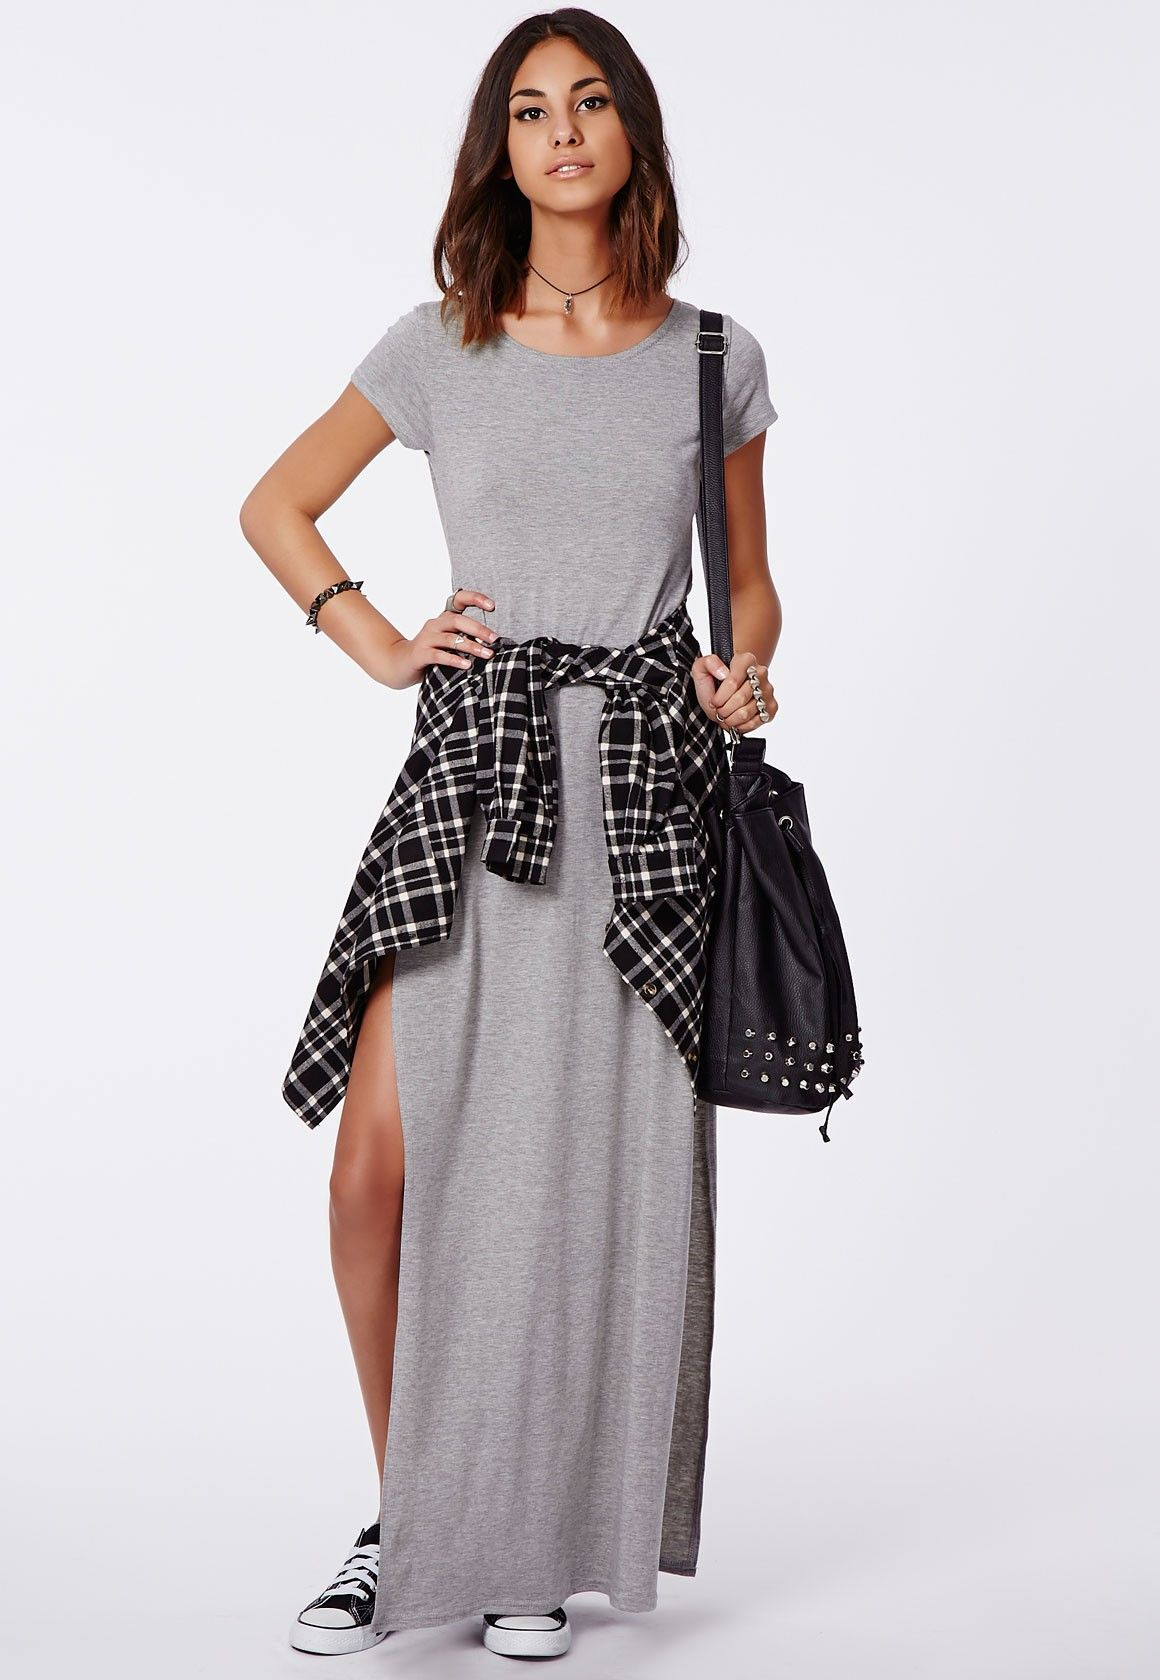 Side Split Maxi Dress Shirt Tied Around The Waist